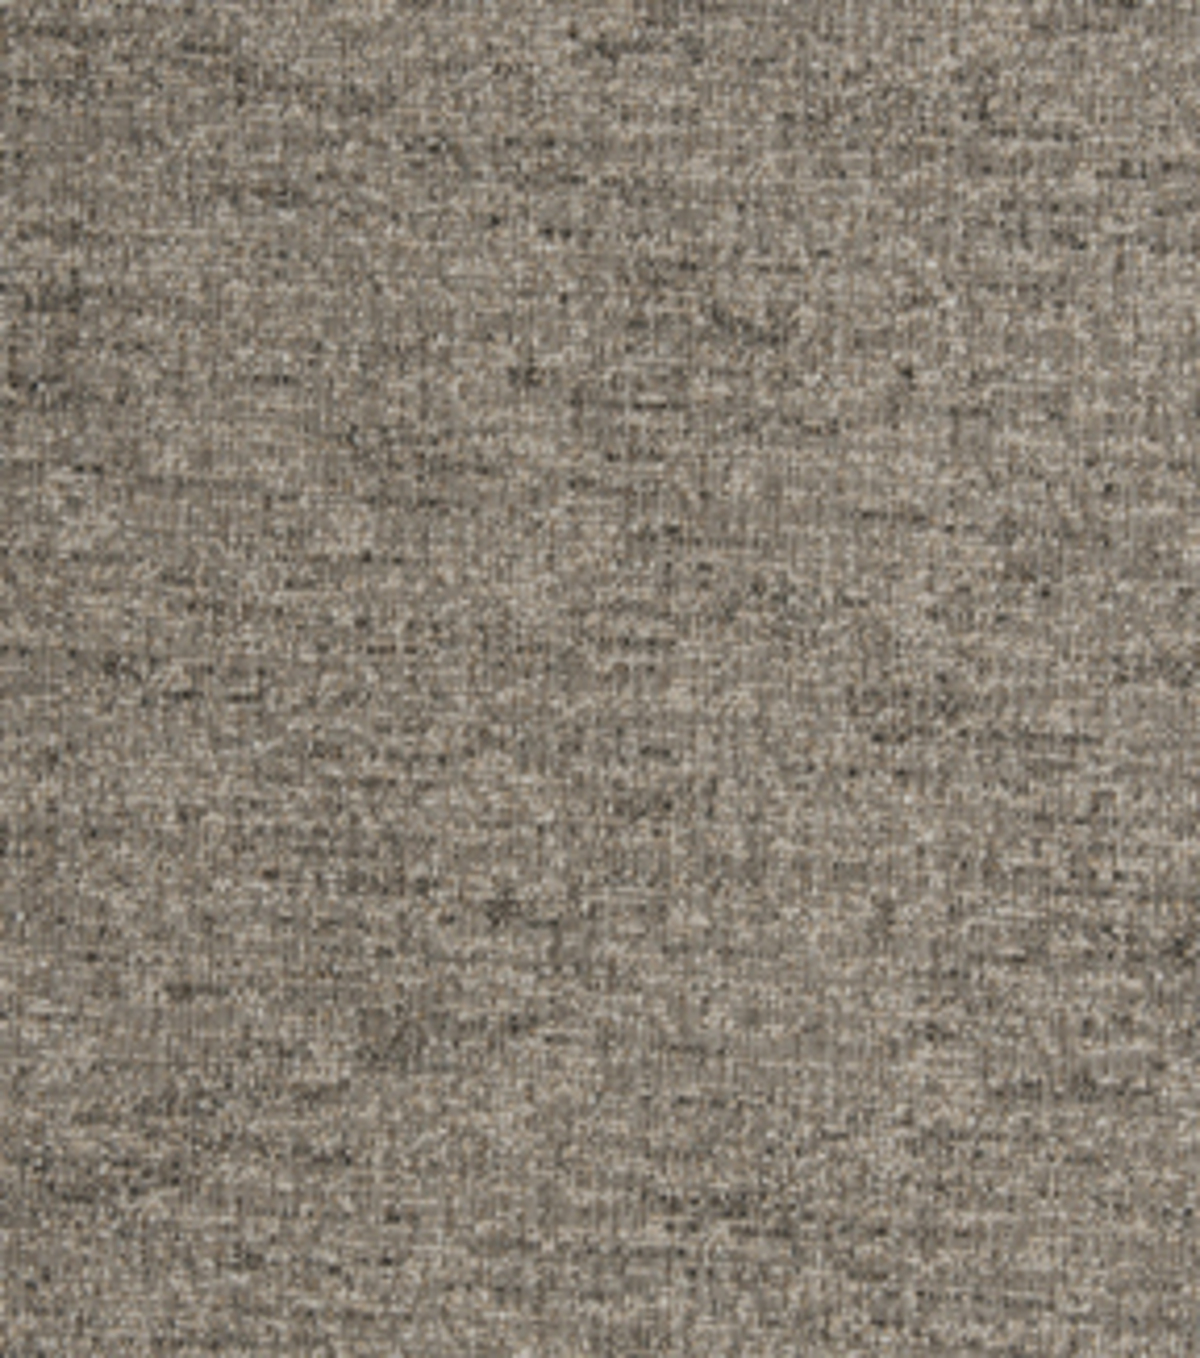 Home Decor 8\u0022x8\u0022 Fabric Swatch-Signature Series Texture Shadow